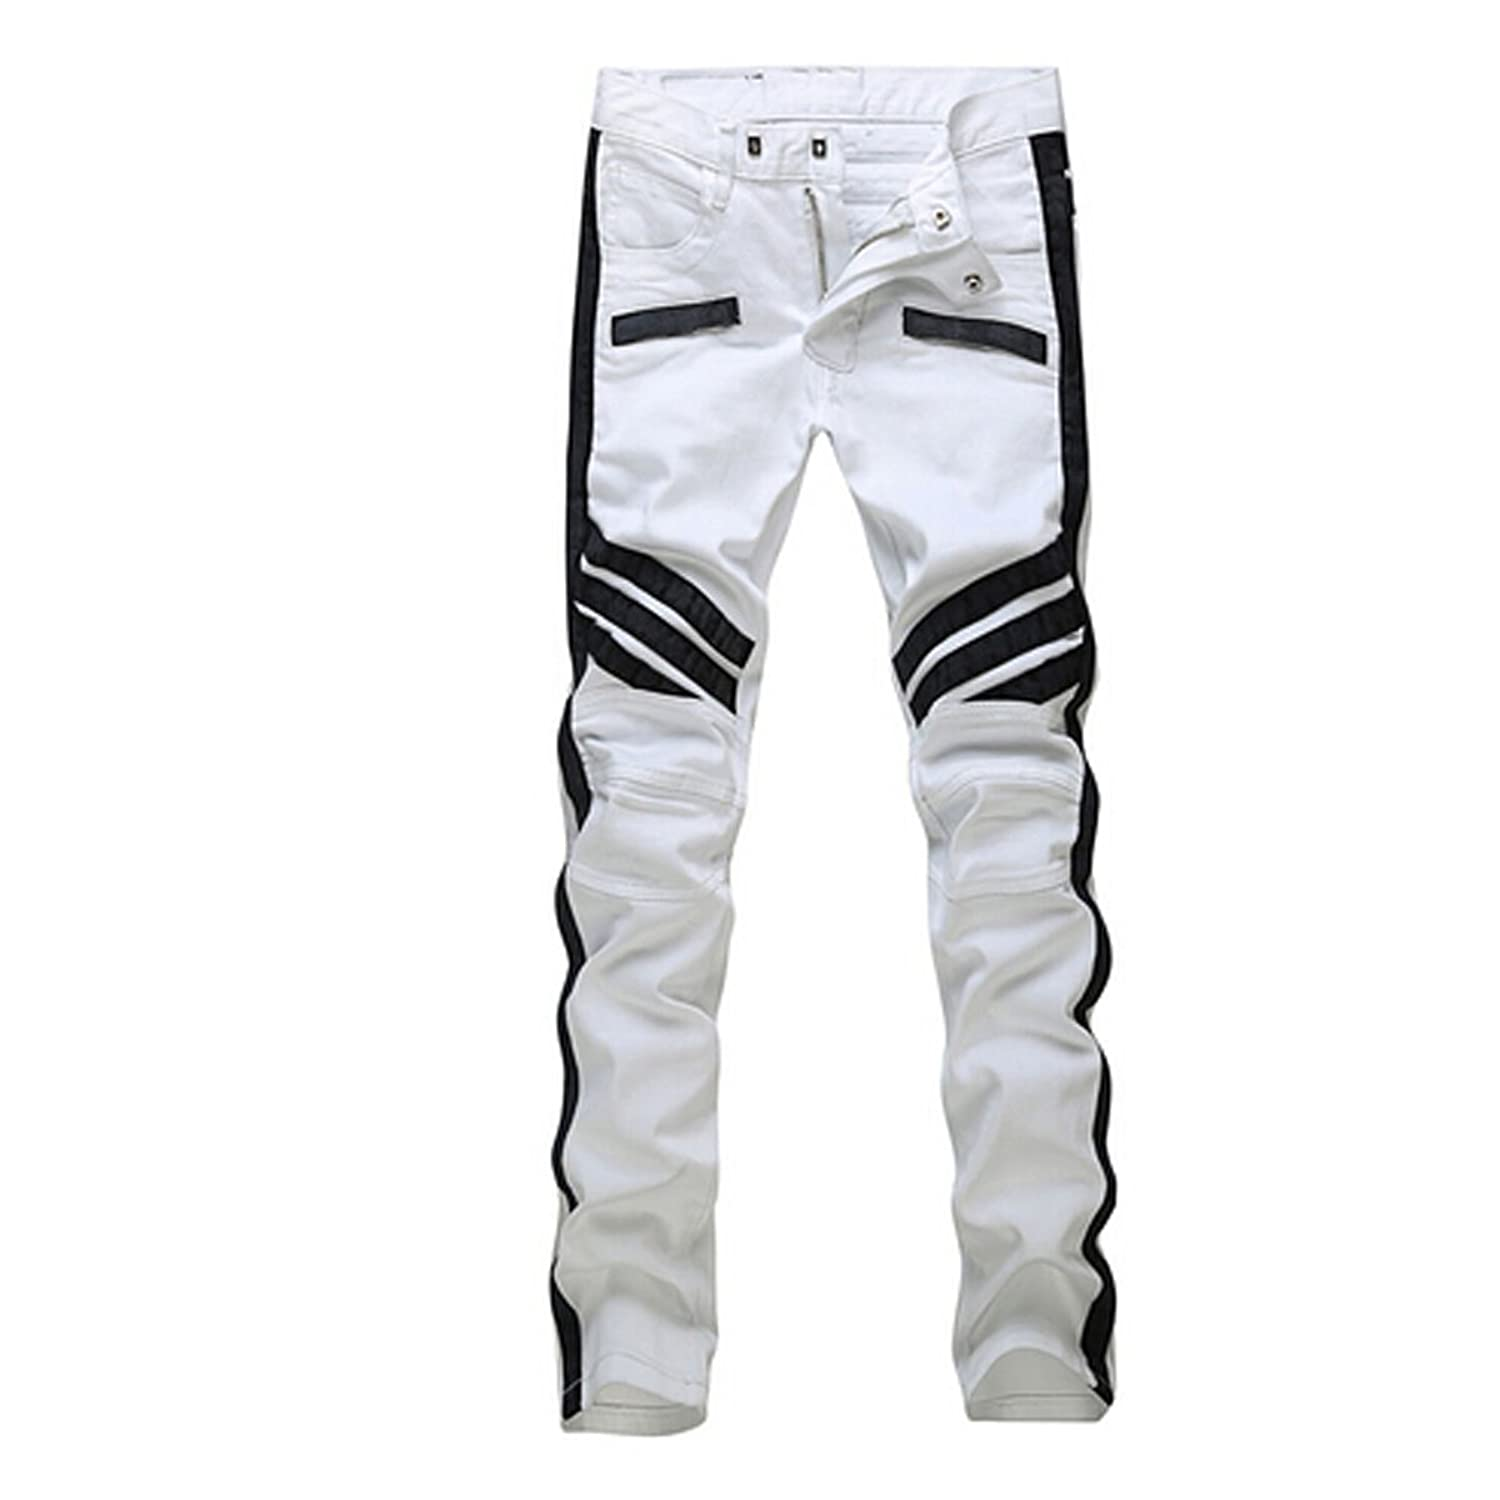 Krralinlin Men White Straight Distressed Ripped Denim Casual Pants